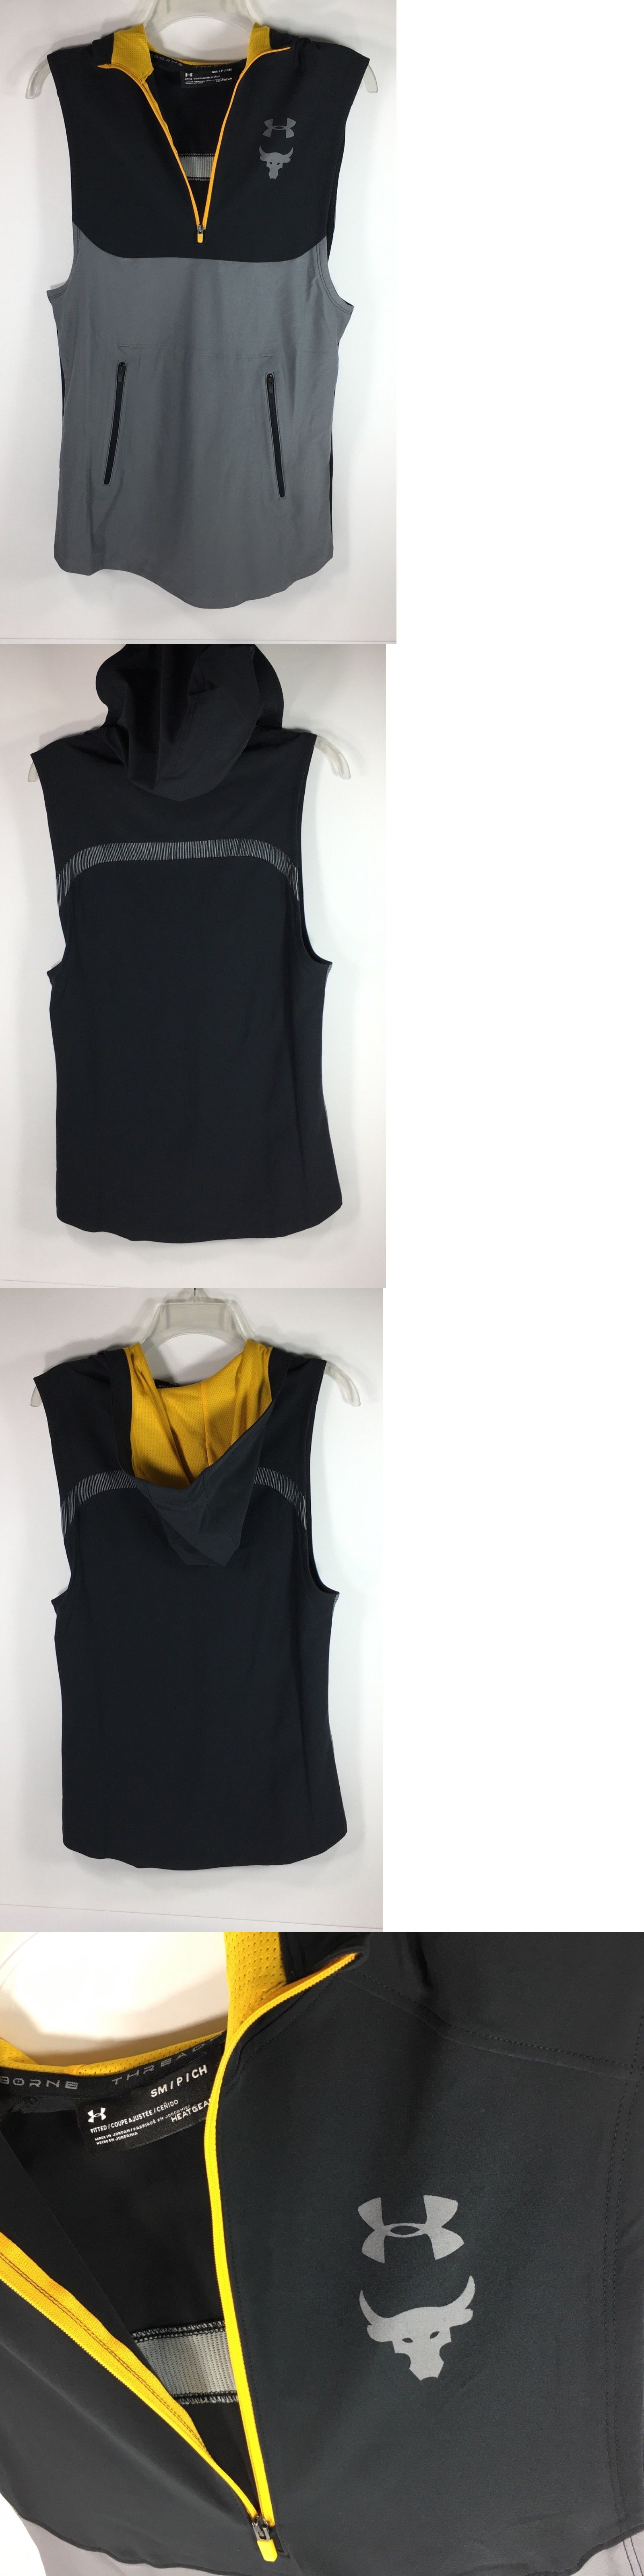 eaa19d903b93ac Activewear Tops 185076  Under Armour Project Rock Vanish Sleeveless Training  Hoodie Vest Mens Size -  BUY IT NOW ONLY   45 on  eBay  activewear  under  ...